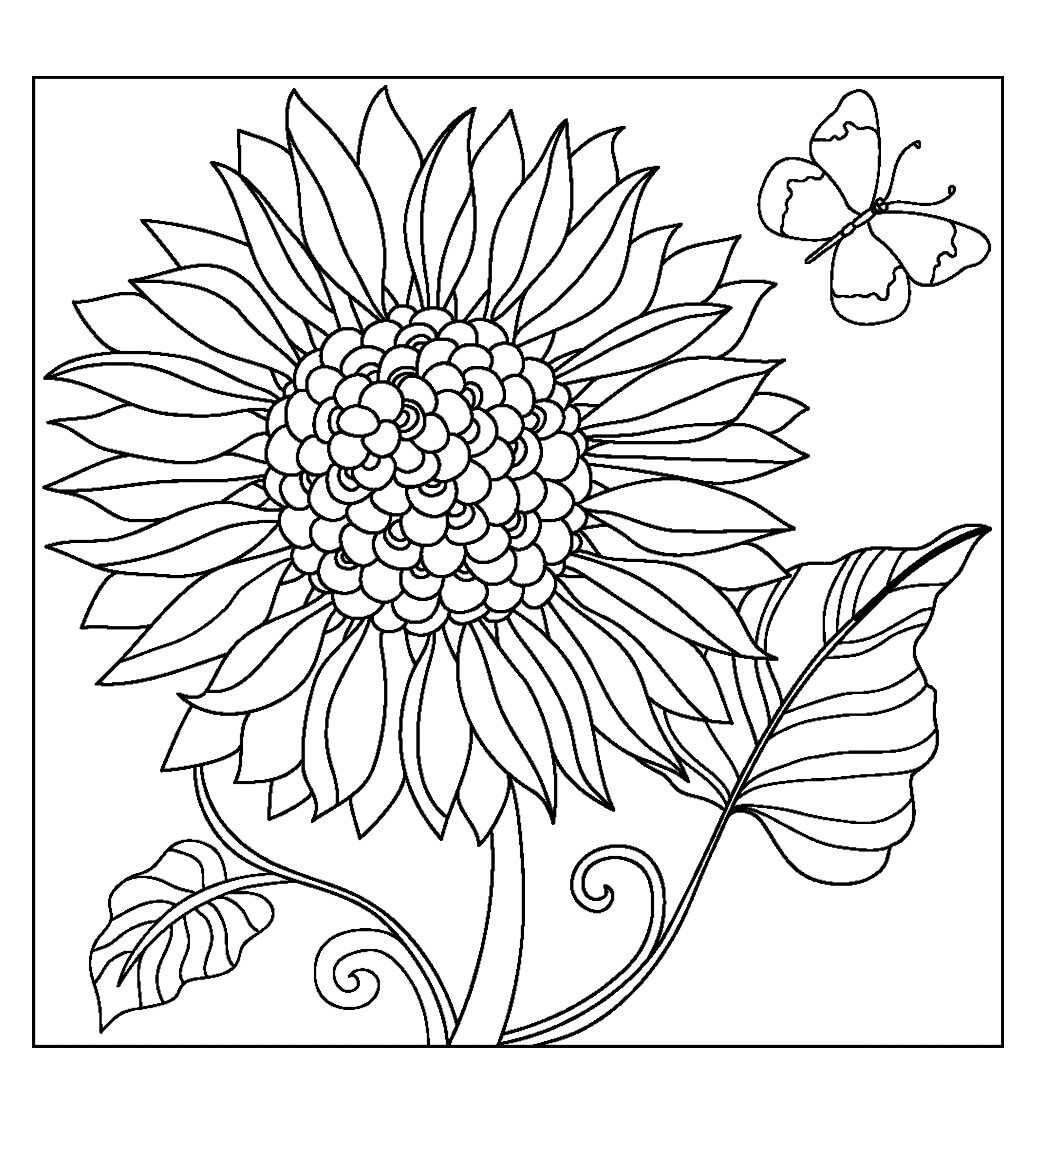 Flower Coloring PagesColoring Pages For AdultsKids ColoringColoring SheetsColoring BooksSunflower CraftsAll FlowersFlower ColorsChristmas Flowers